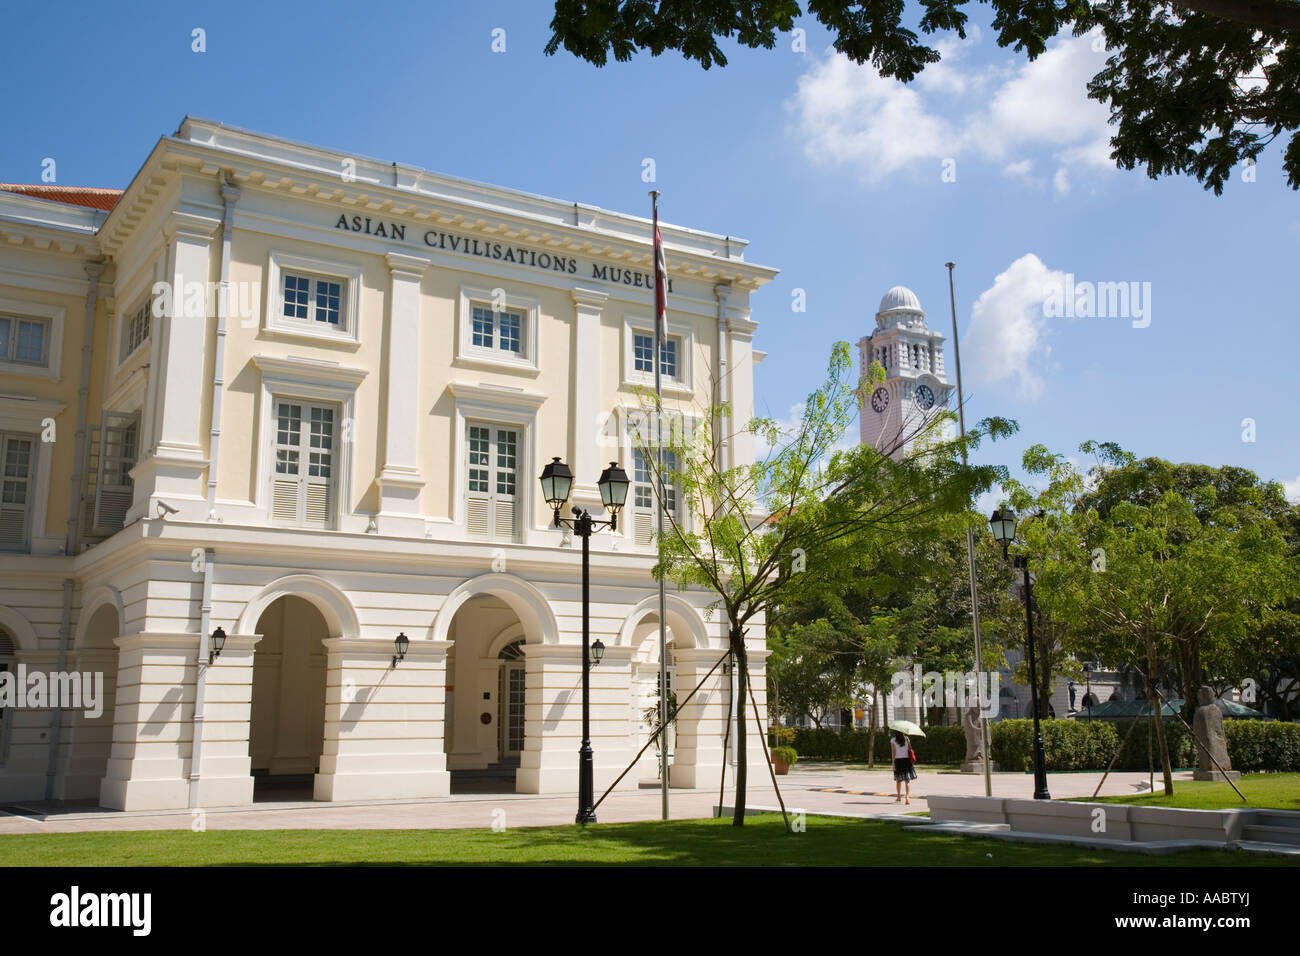 Civic District Singapore Asian Civilisations Museum in Empress Building 1865 at Empress Place Originally Court House. - Stock Image